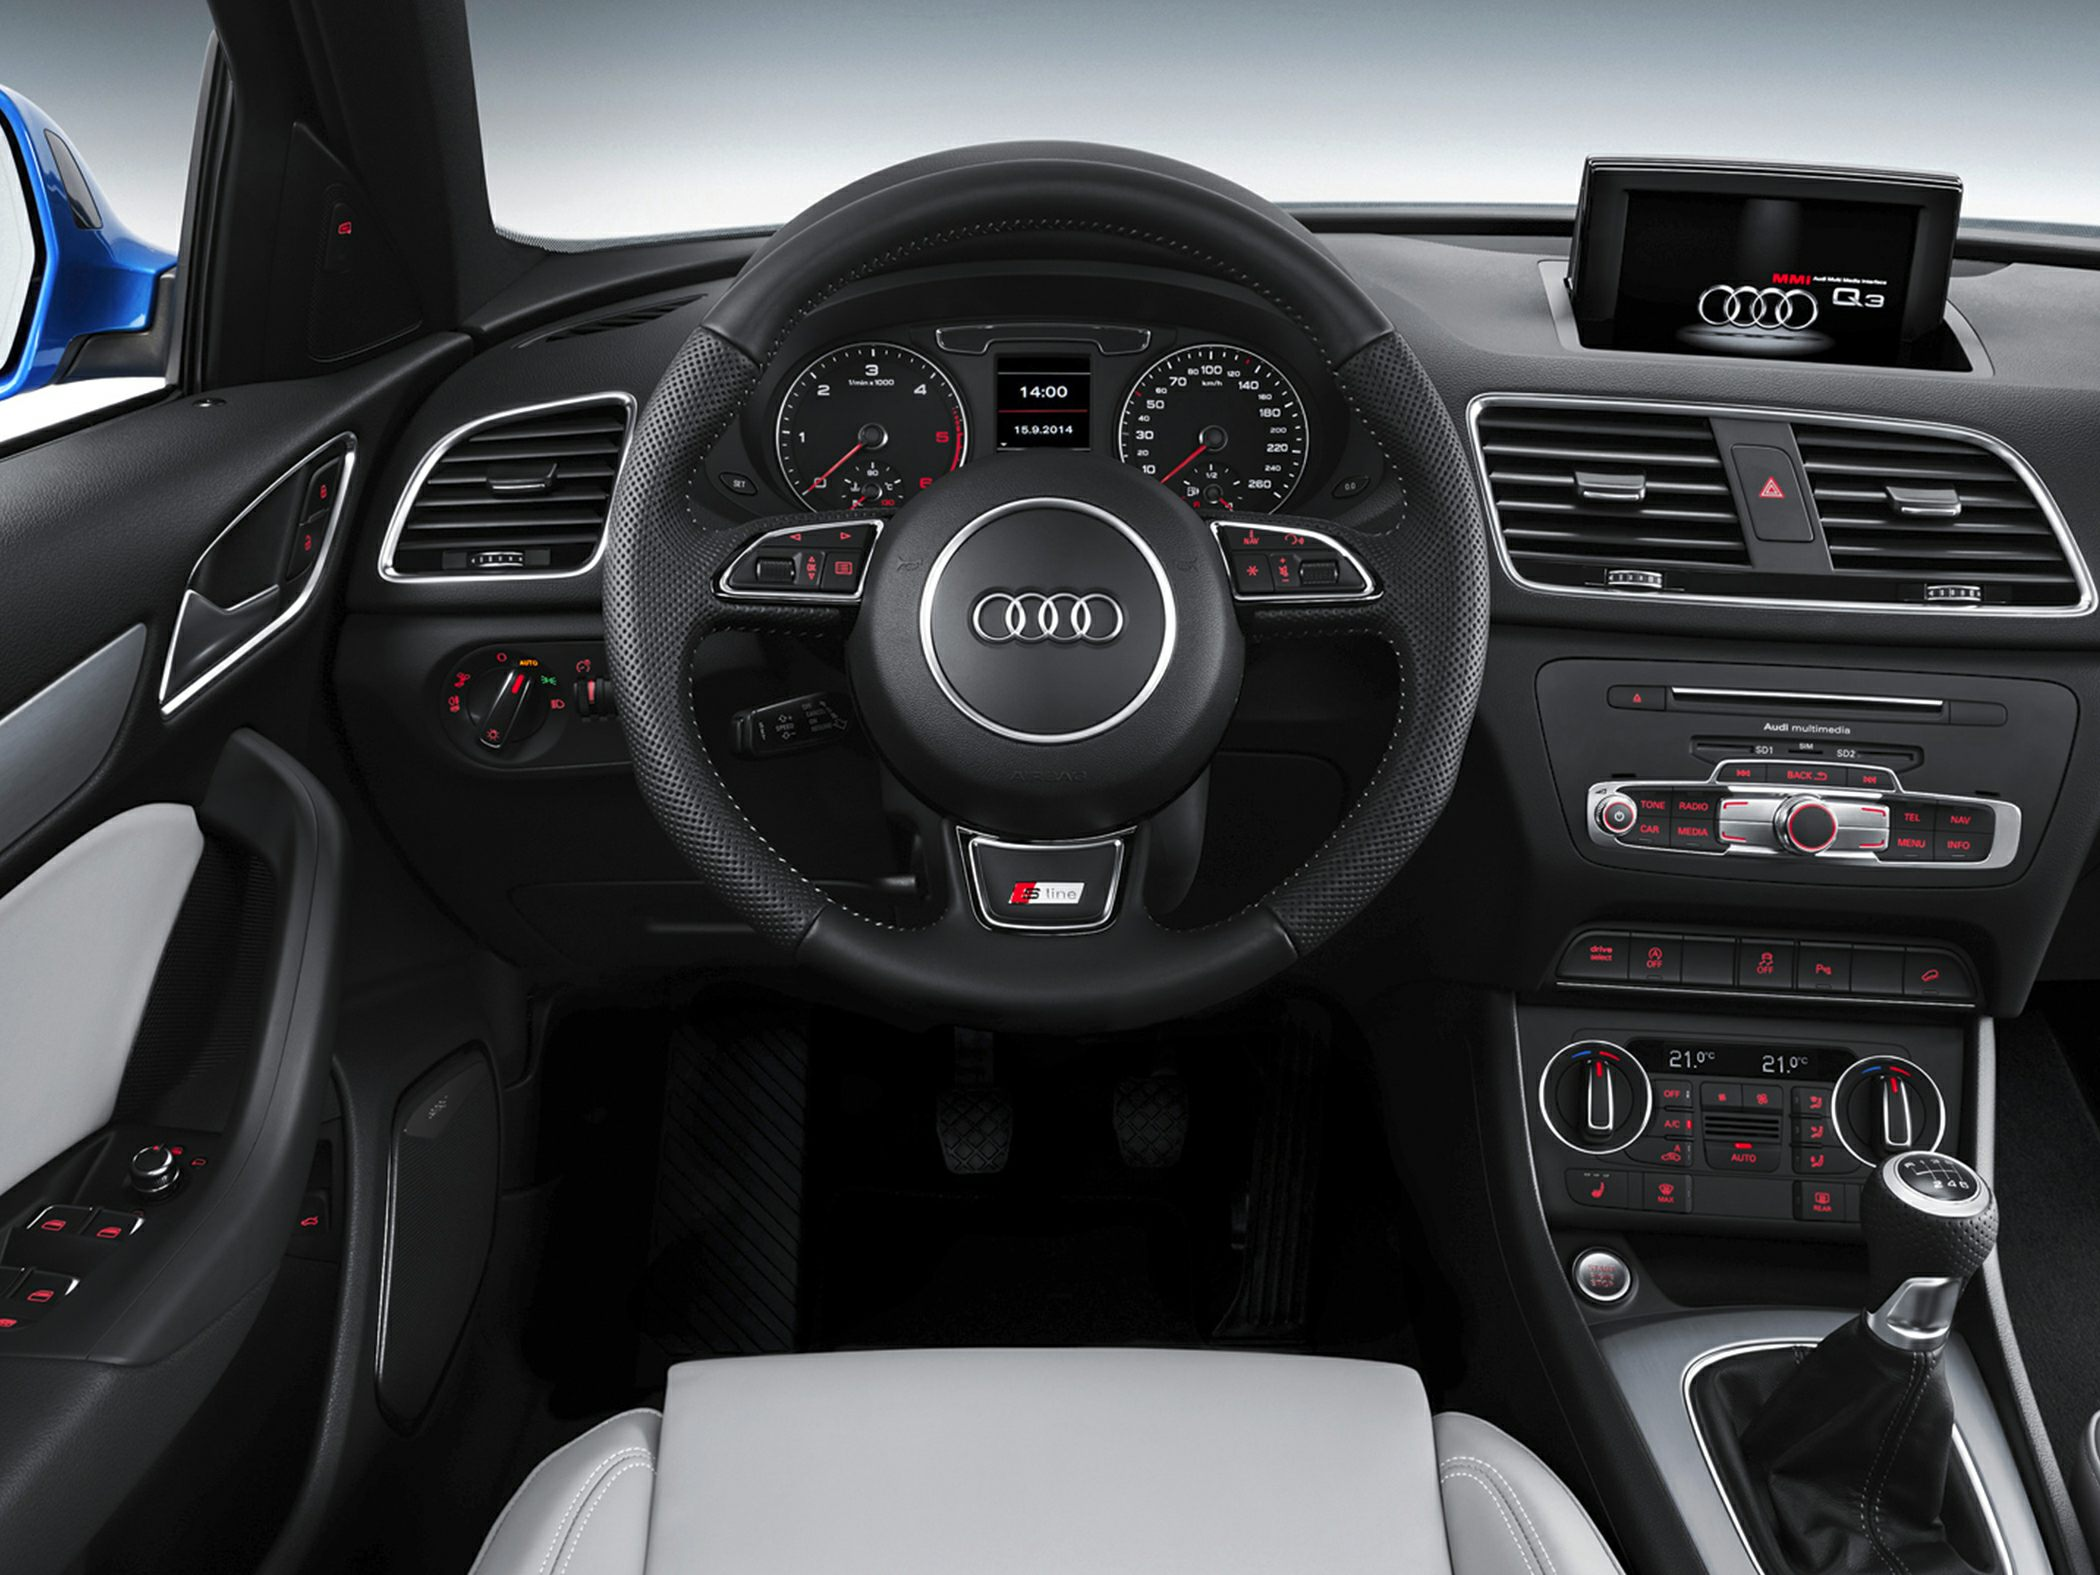 Audi Q3 Lease >> 2018 Audi Q3 Deals Prices Incentives Leases Overview Carsdirect